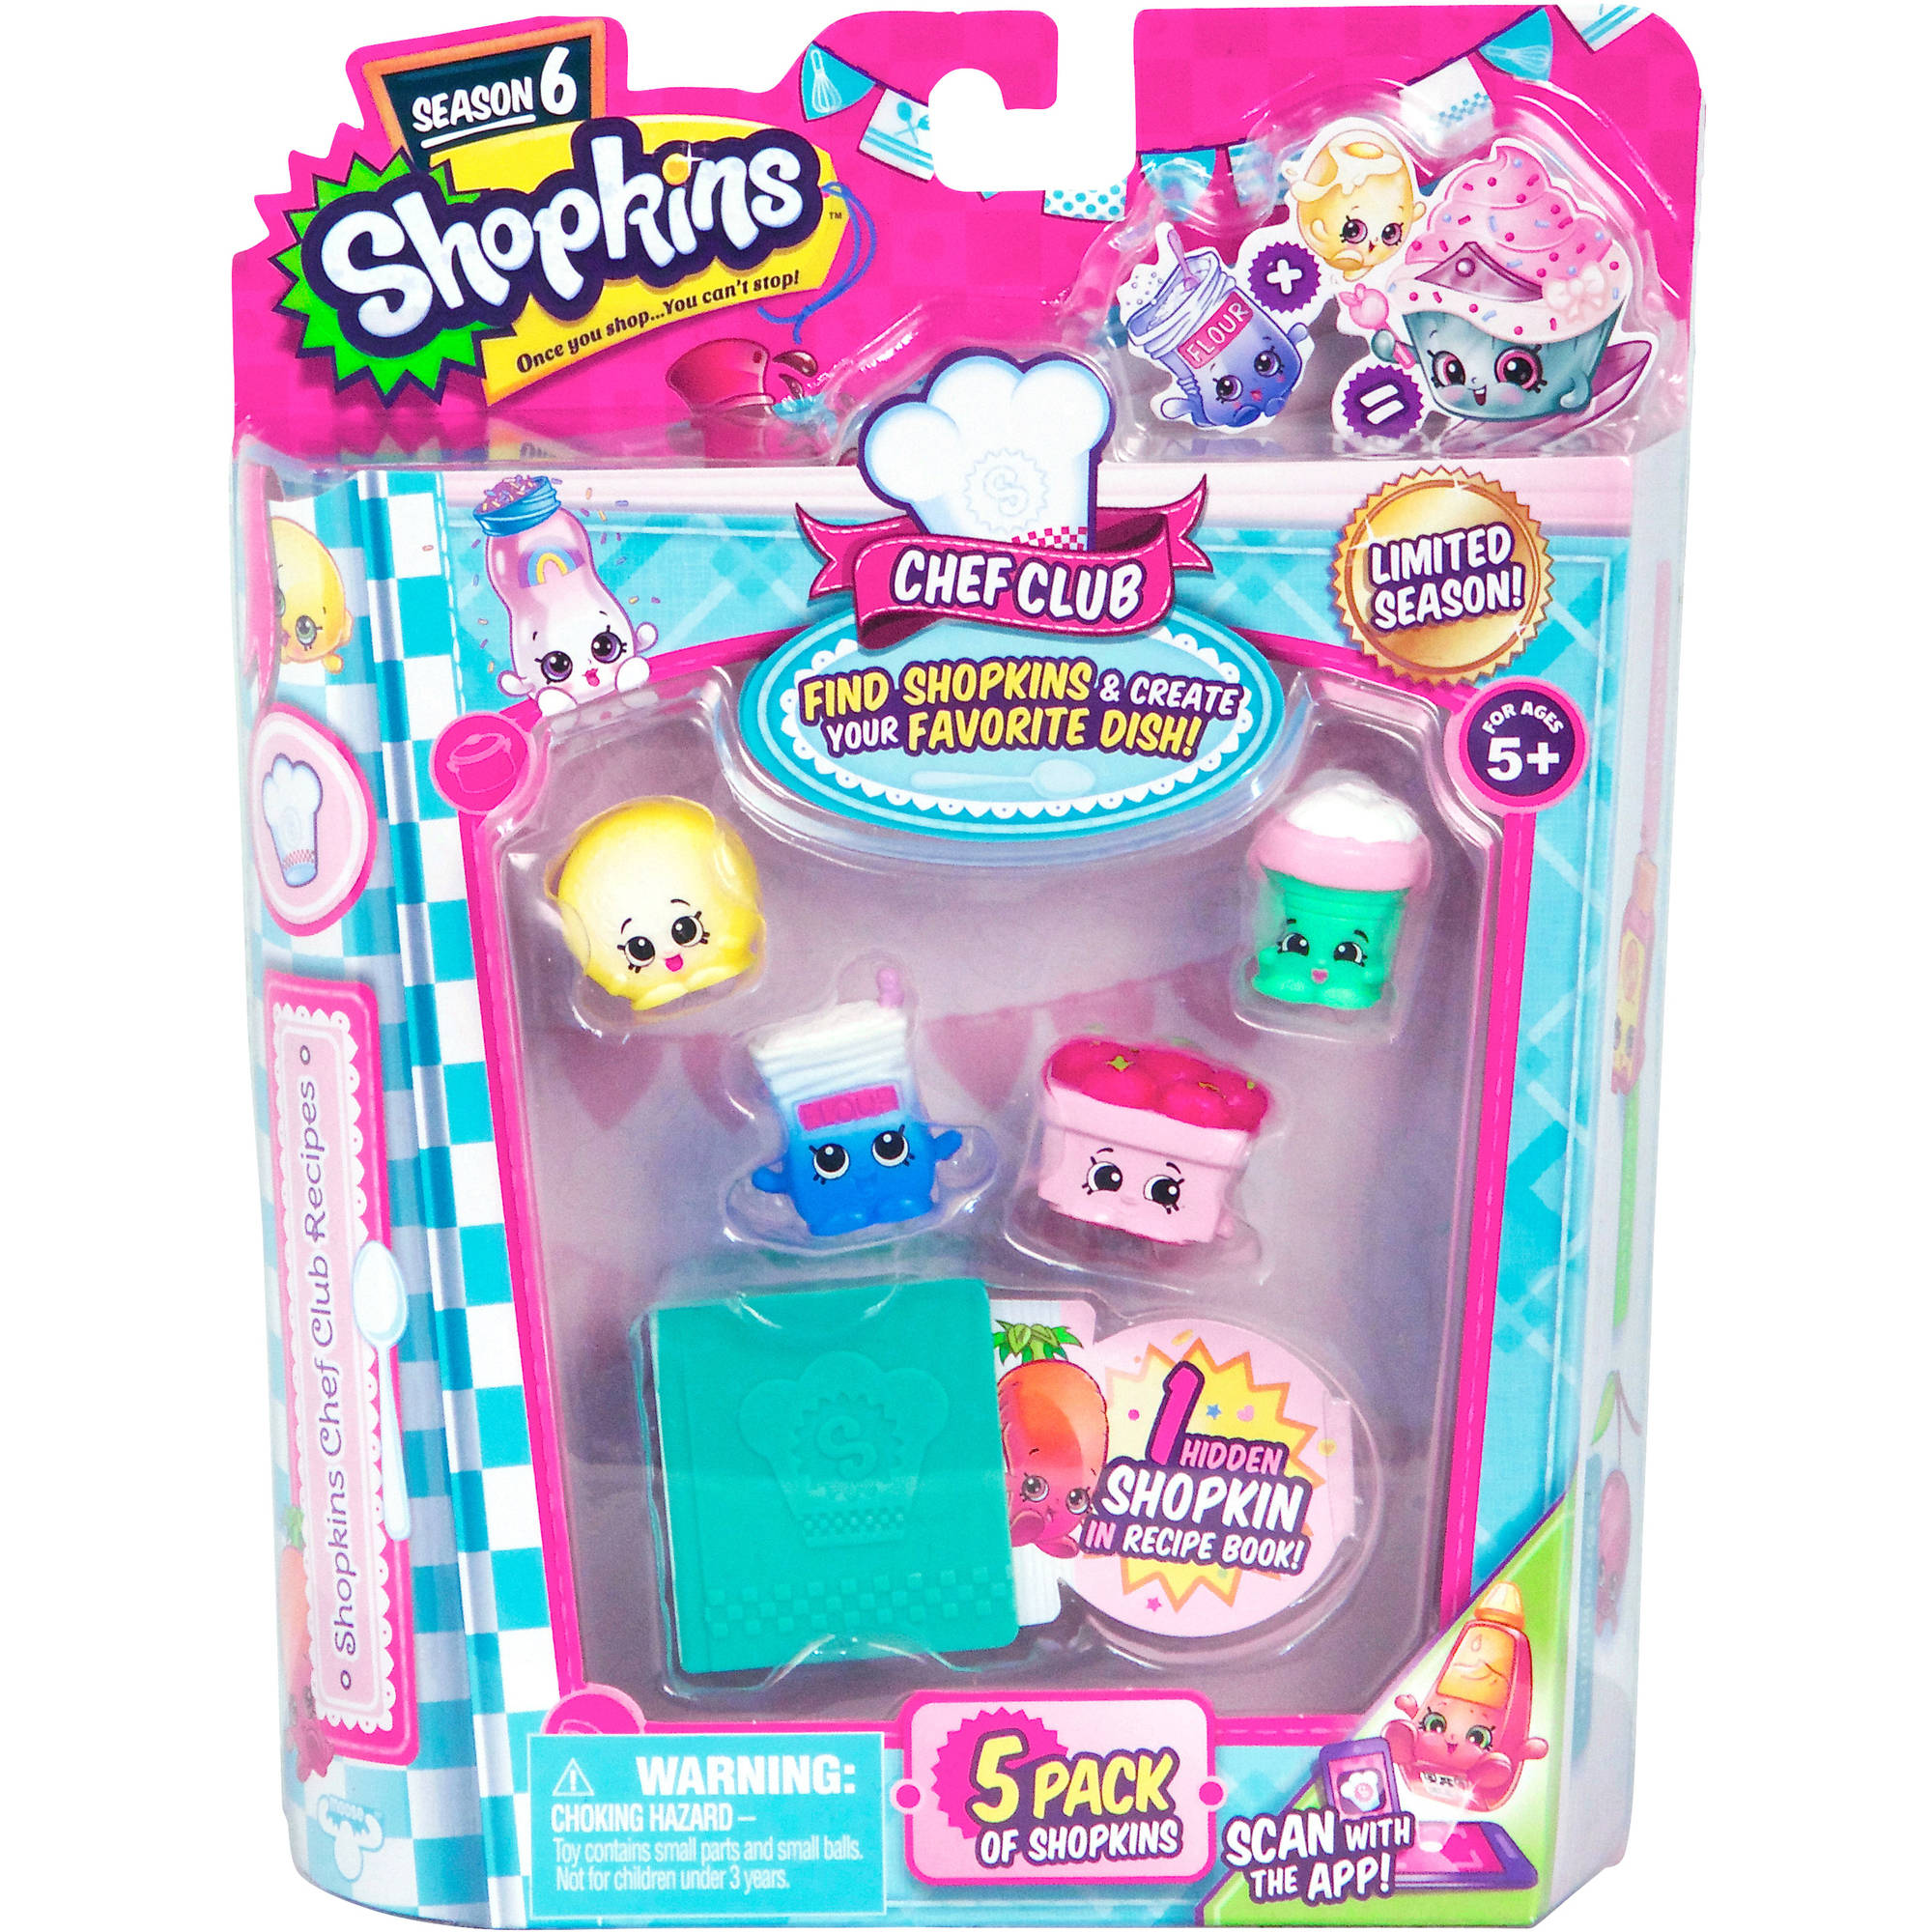 Shopkins Season 6 Chef Club, 5 Pack